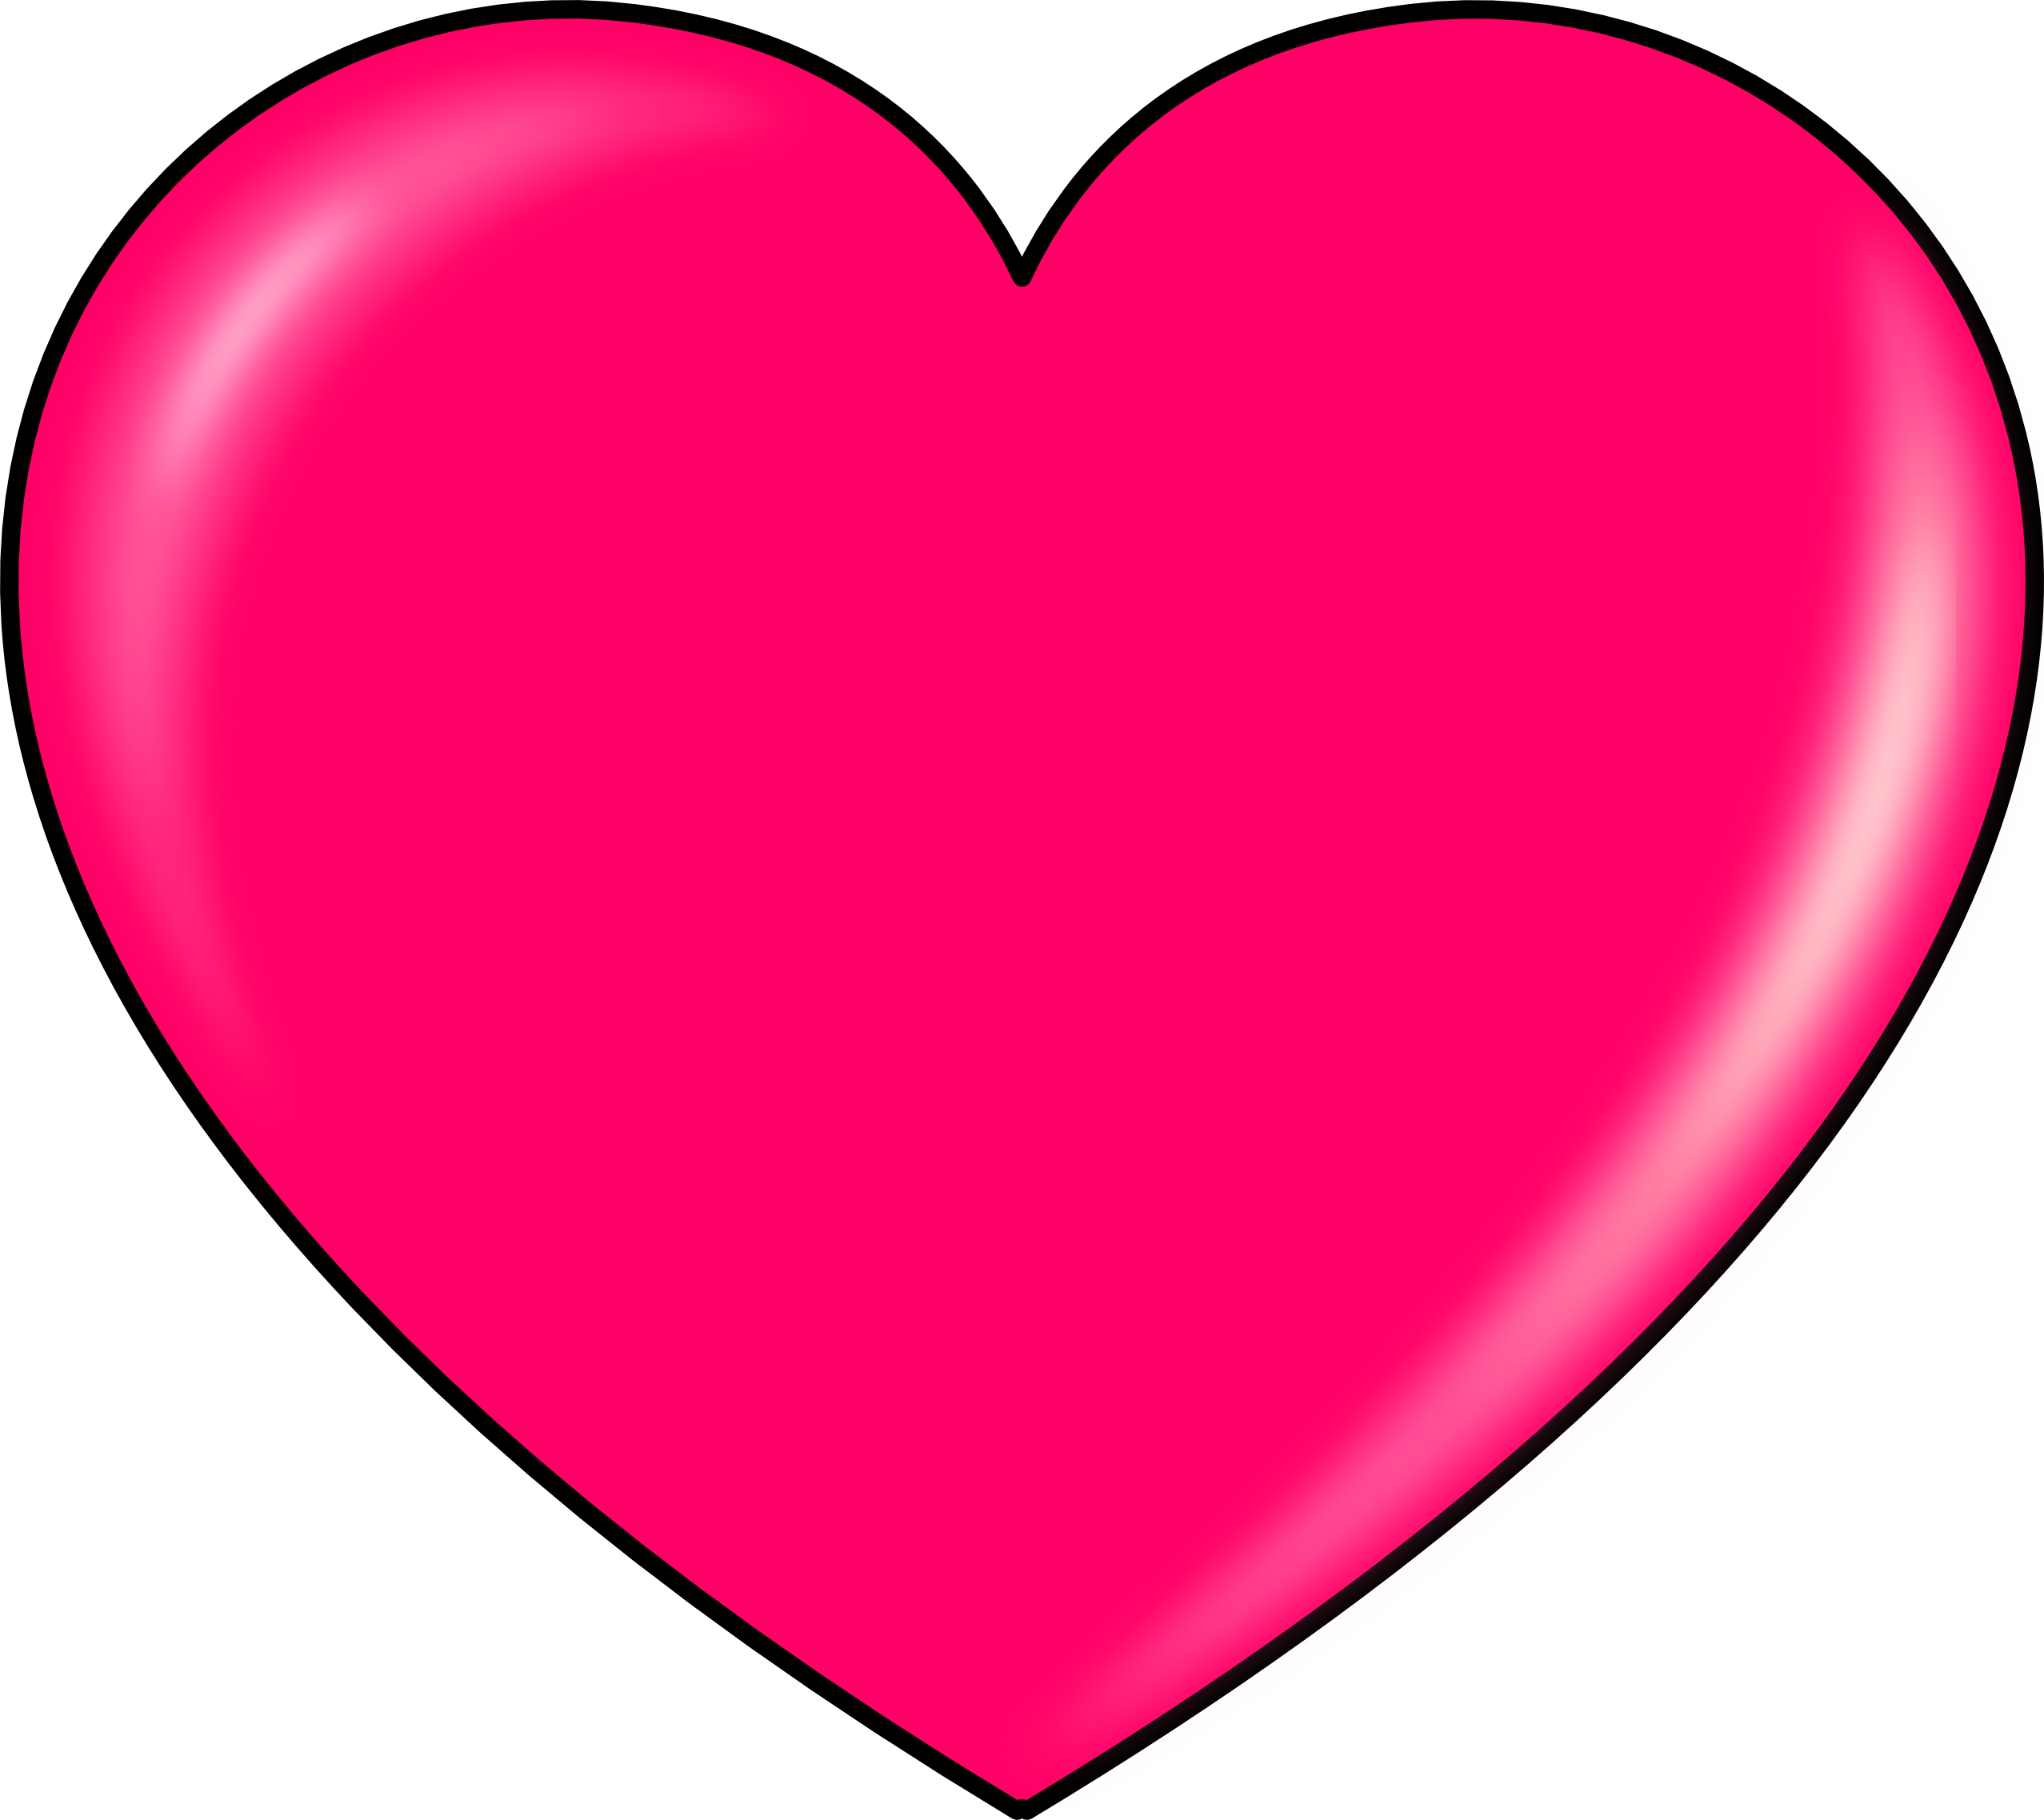 Pin By Hopeless On The Vision Board Pink Heart Heart Wallpaper Free Clip Art